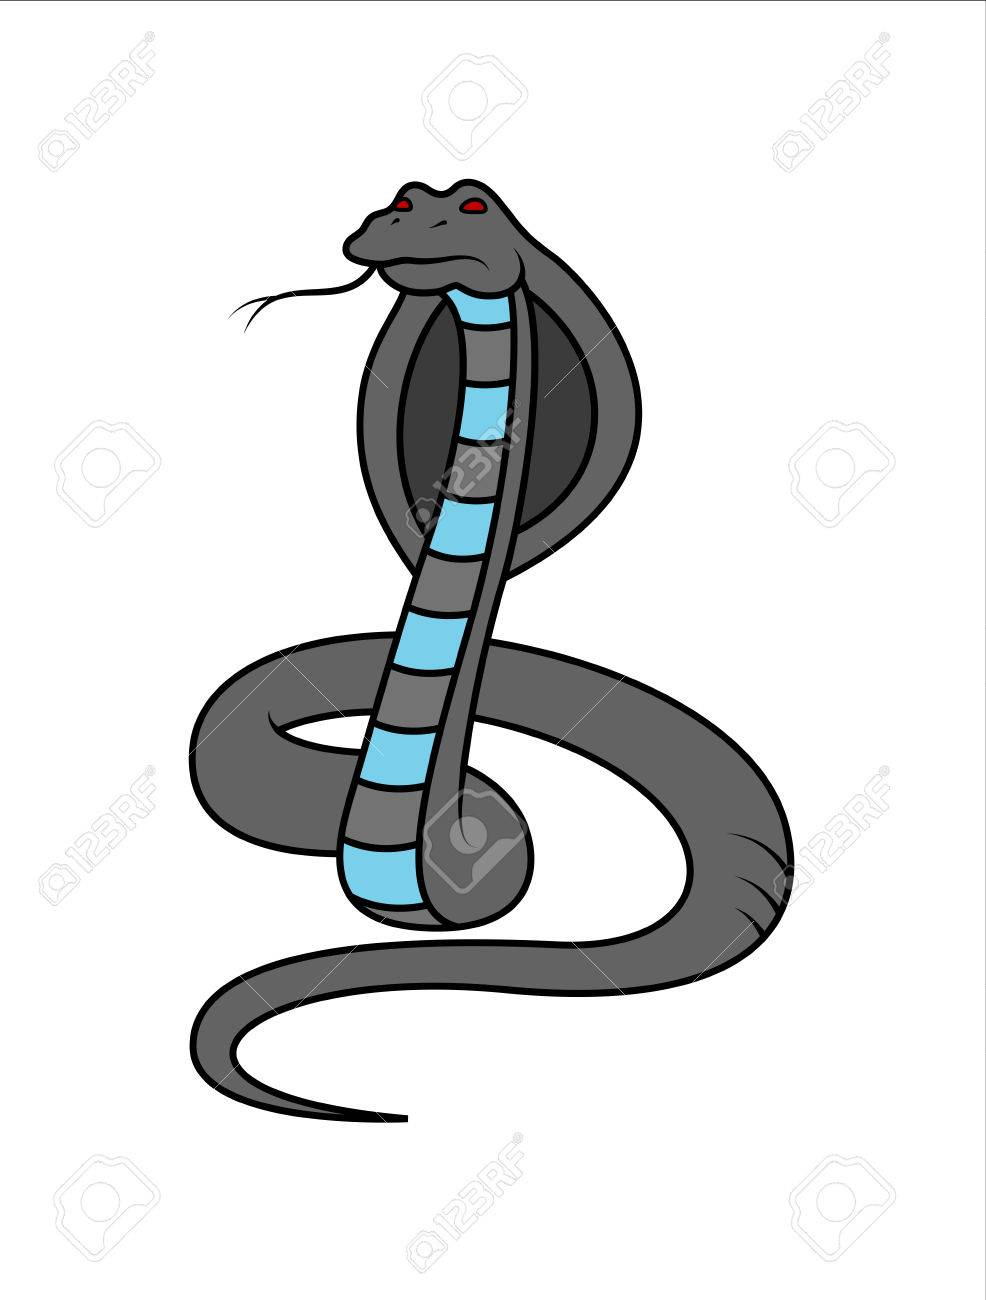 Cartoon King Cobra Snake Royalty Free Cliparts, Vectors, And Stock ...